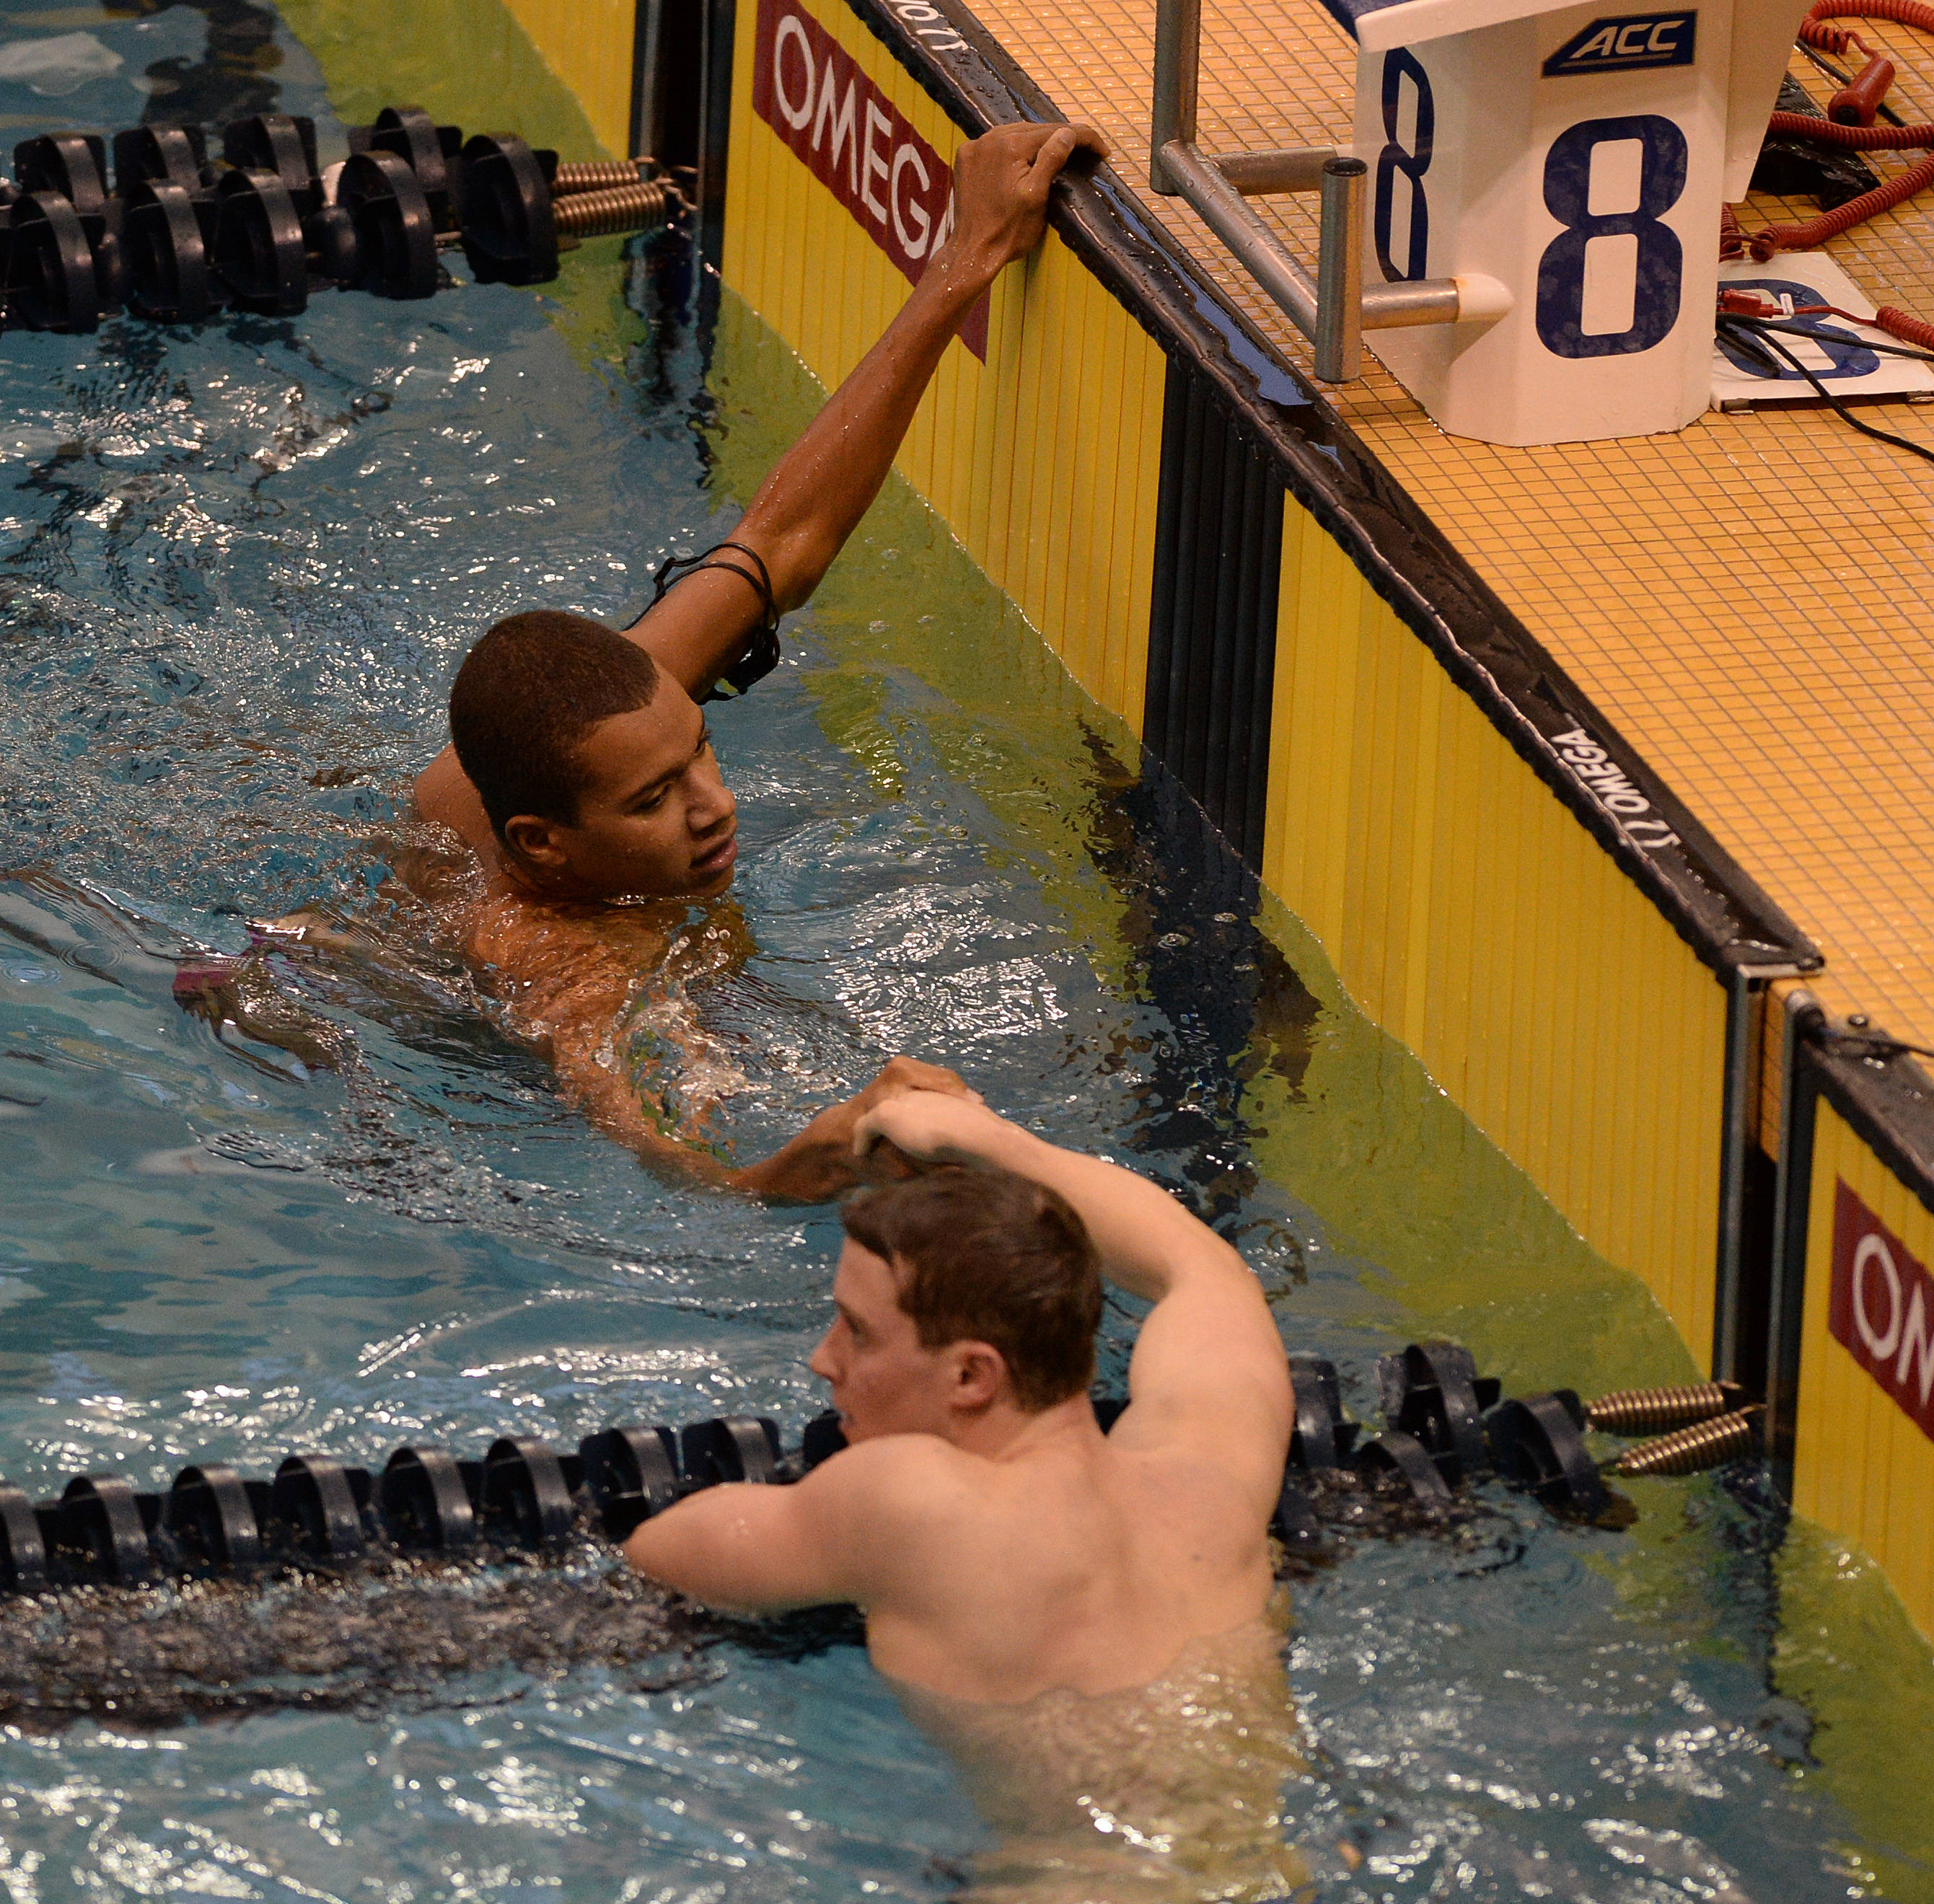 Calvin Bryant shakes hands after his 500 free - Mitch White